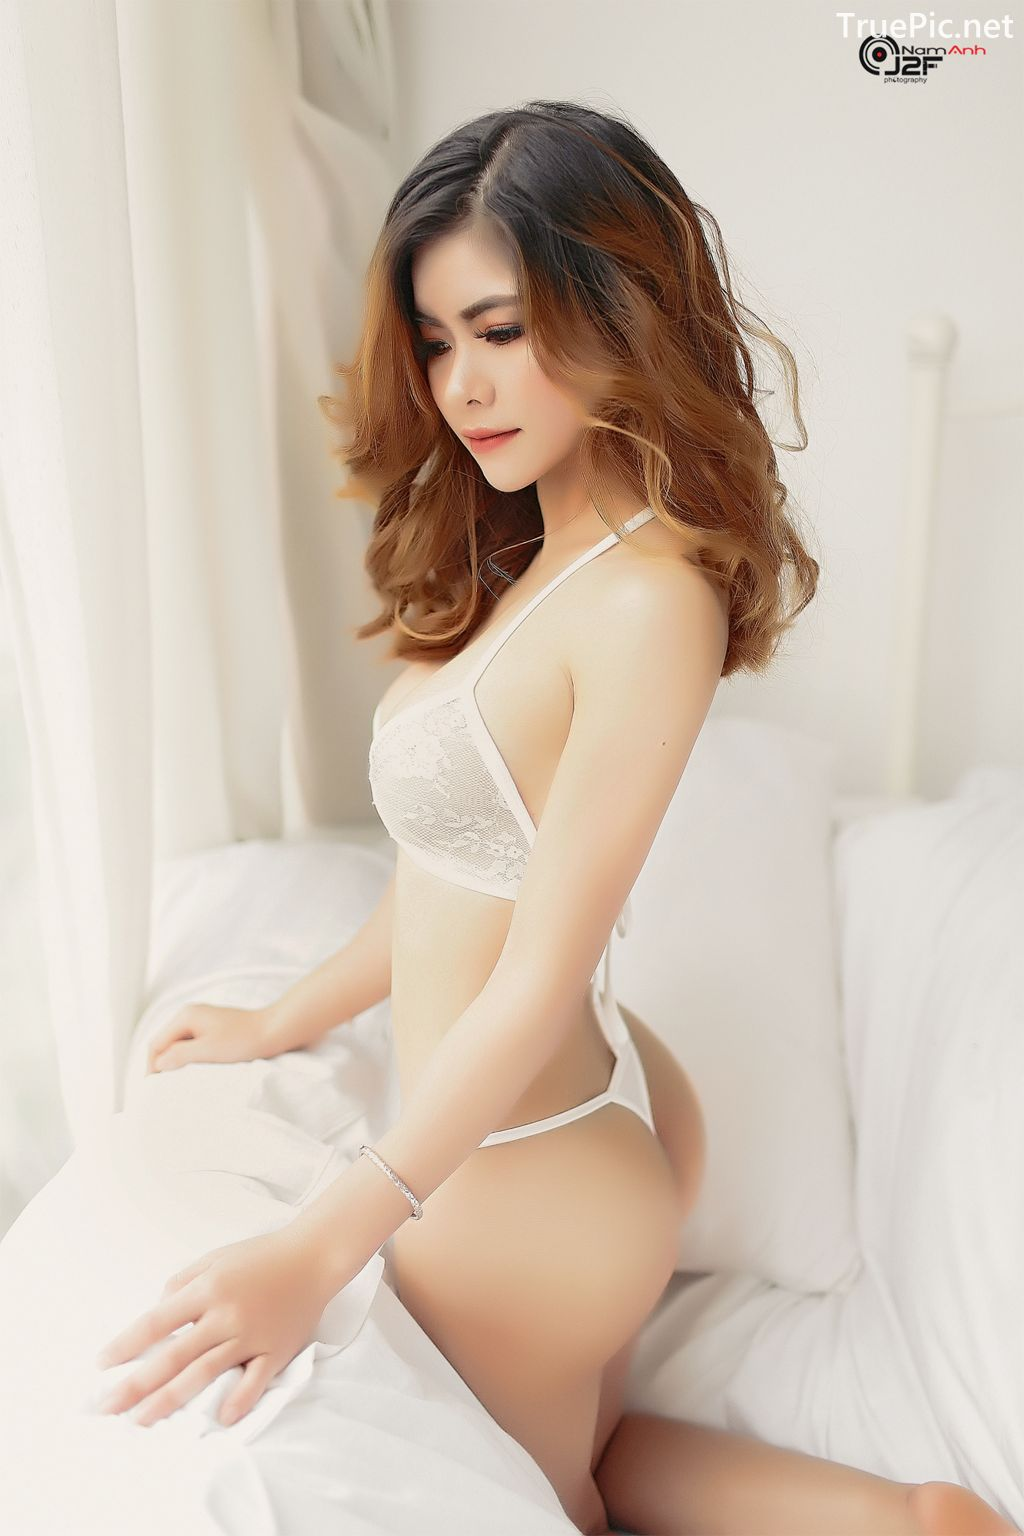 Image-Vietnamese-Model-Sexy-Beauty-of-Beautiful-Girls-Taken-by-NamAnh-Photography-5-TruePic.net- Picture-10